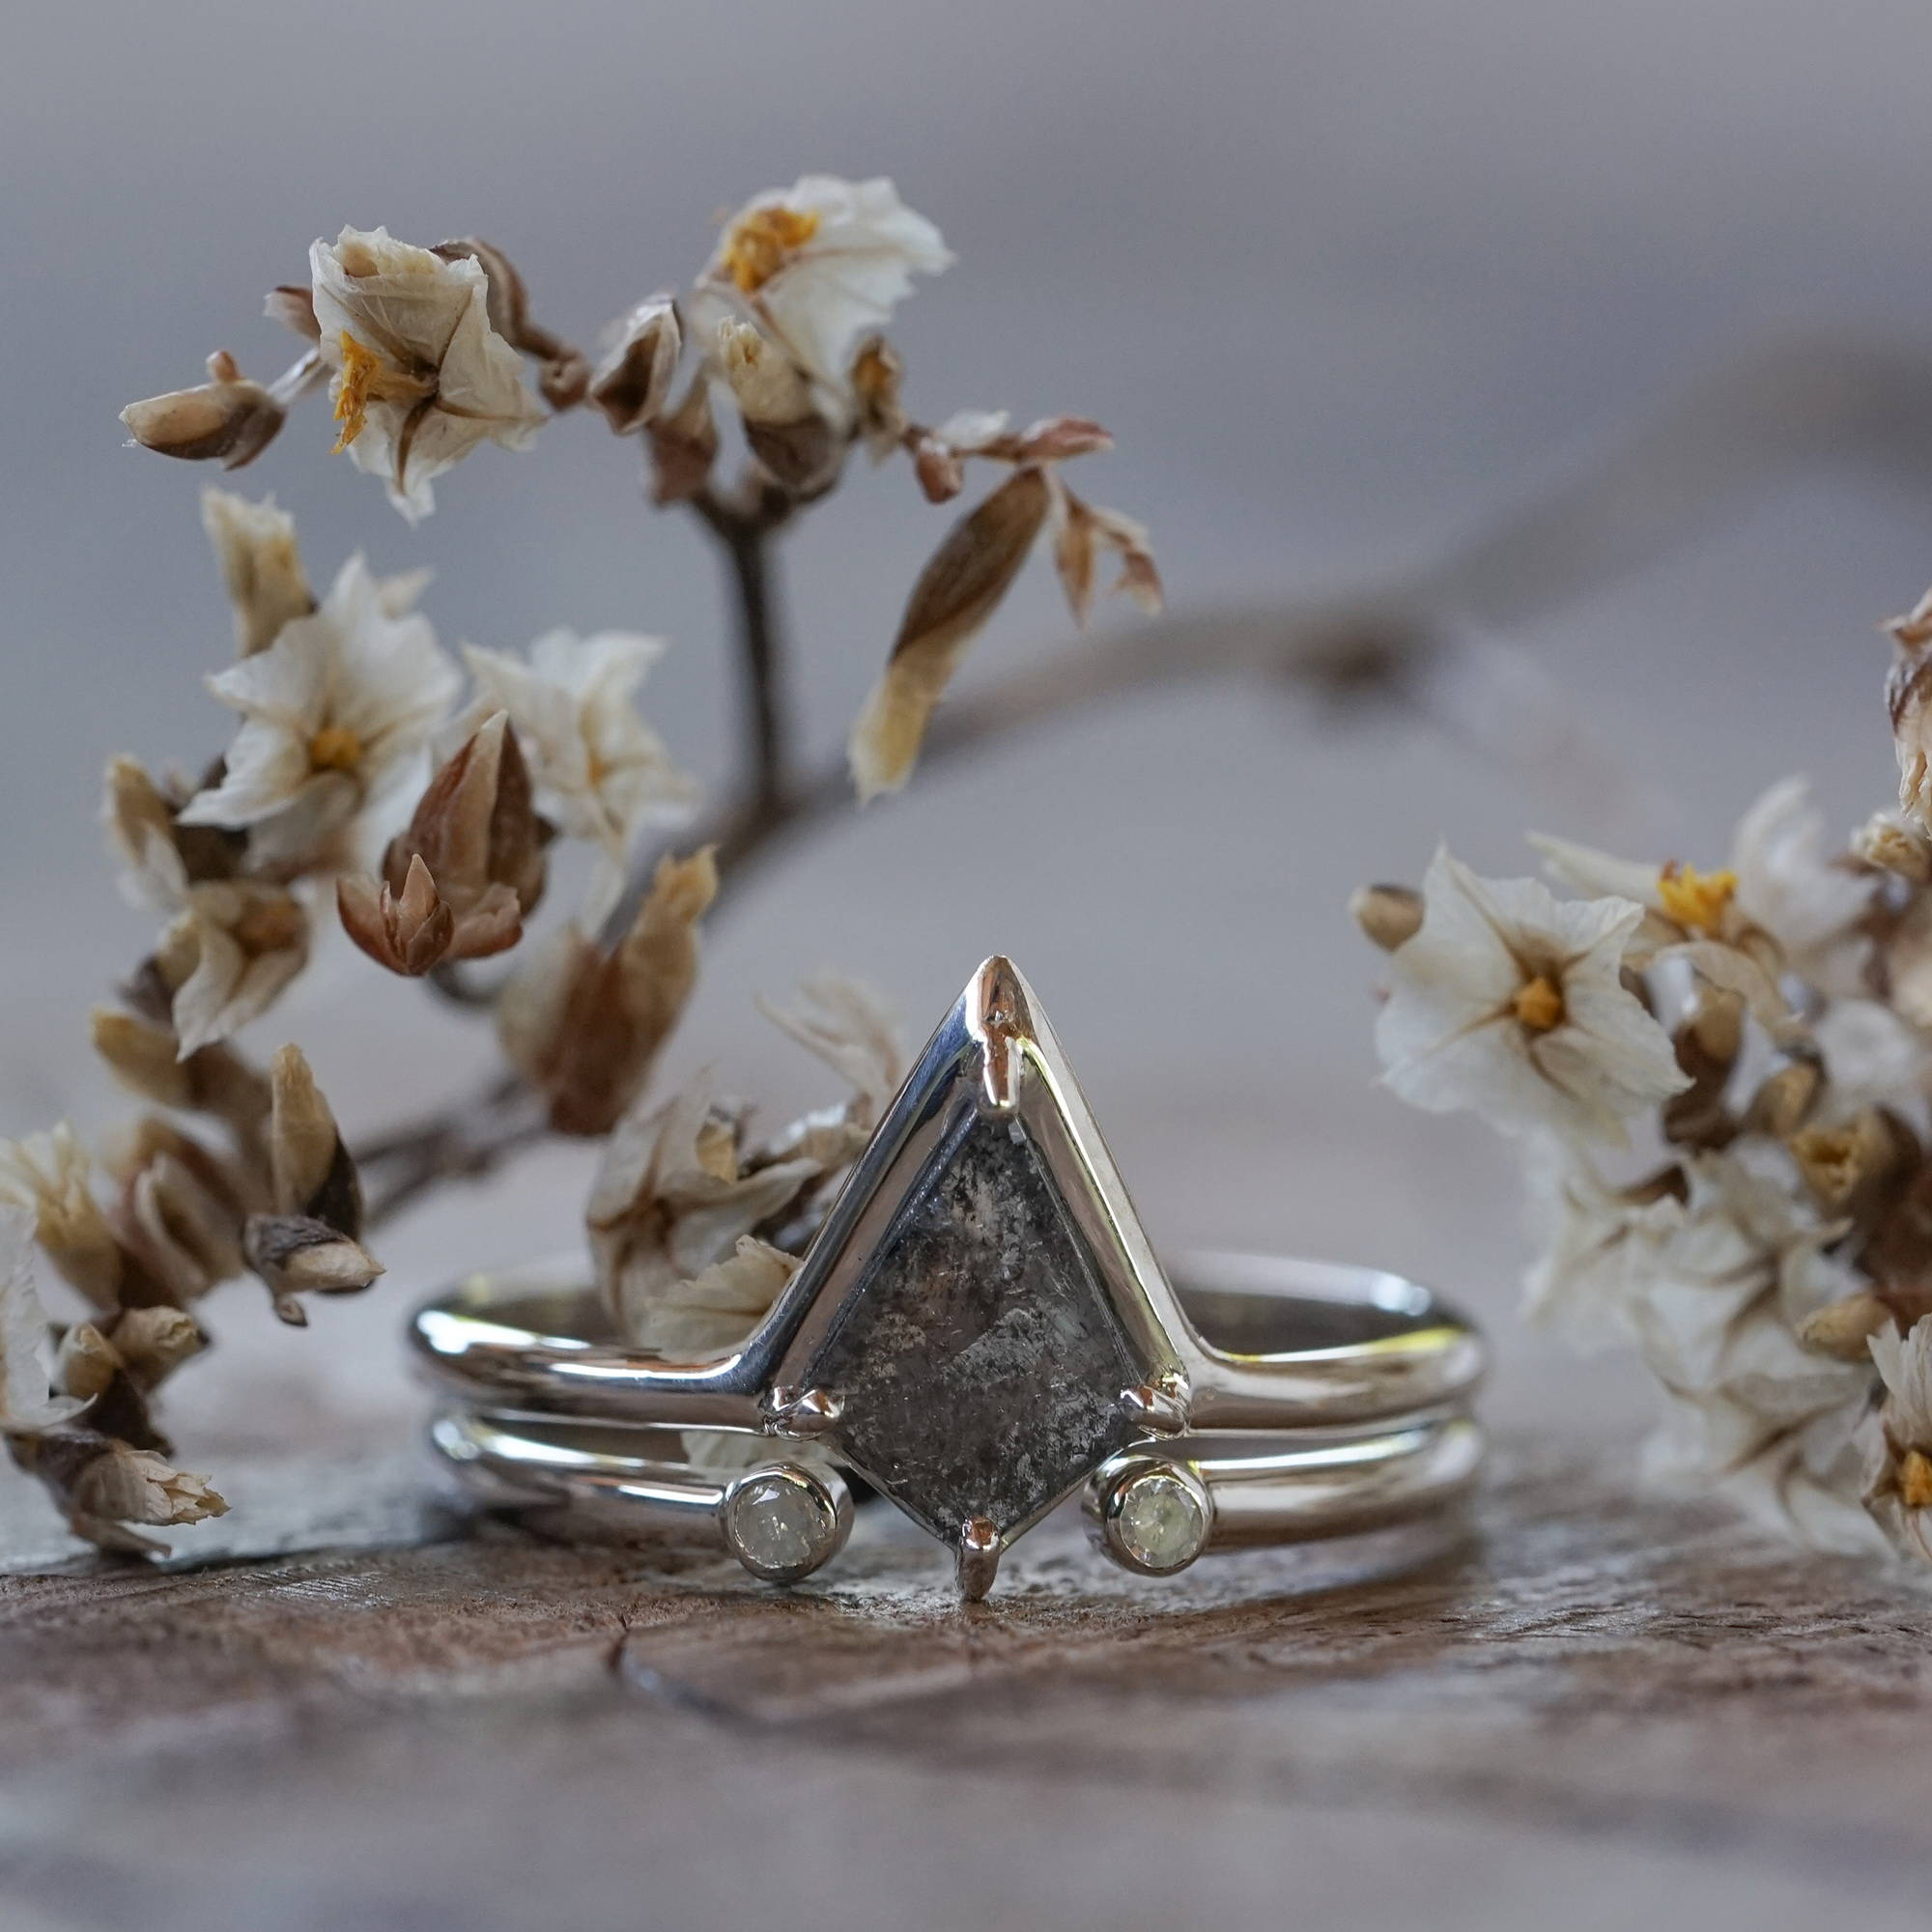 Silver Kite Diamond Ring Set is a conflict free diamond ring.